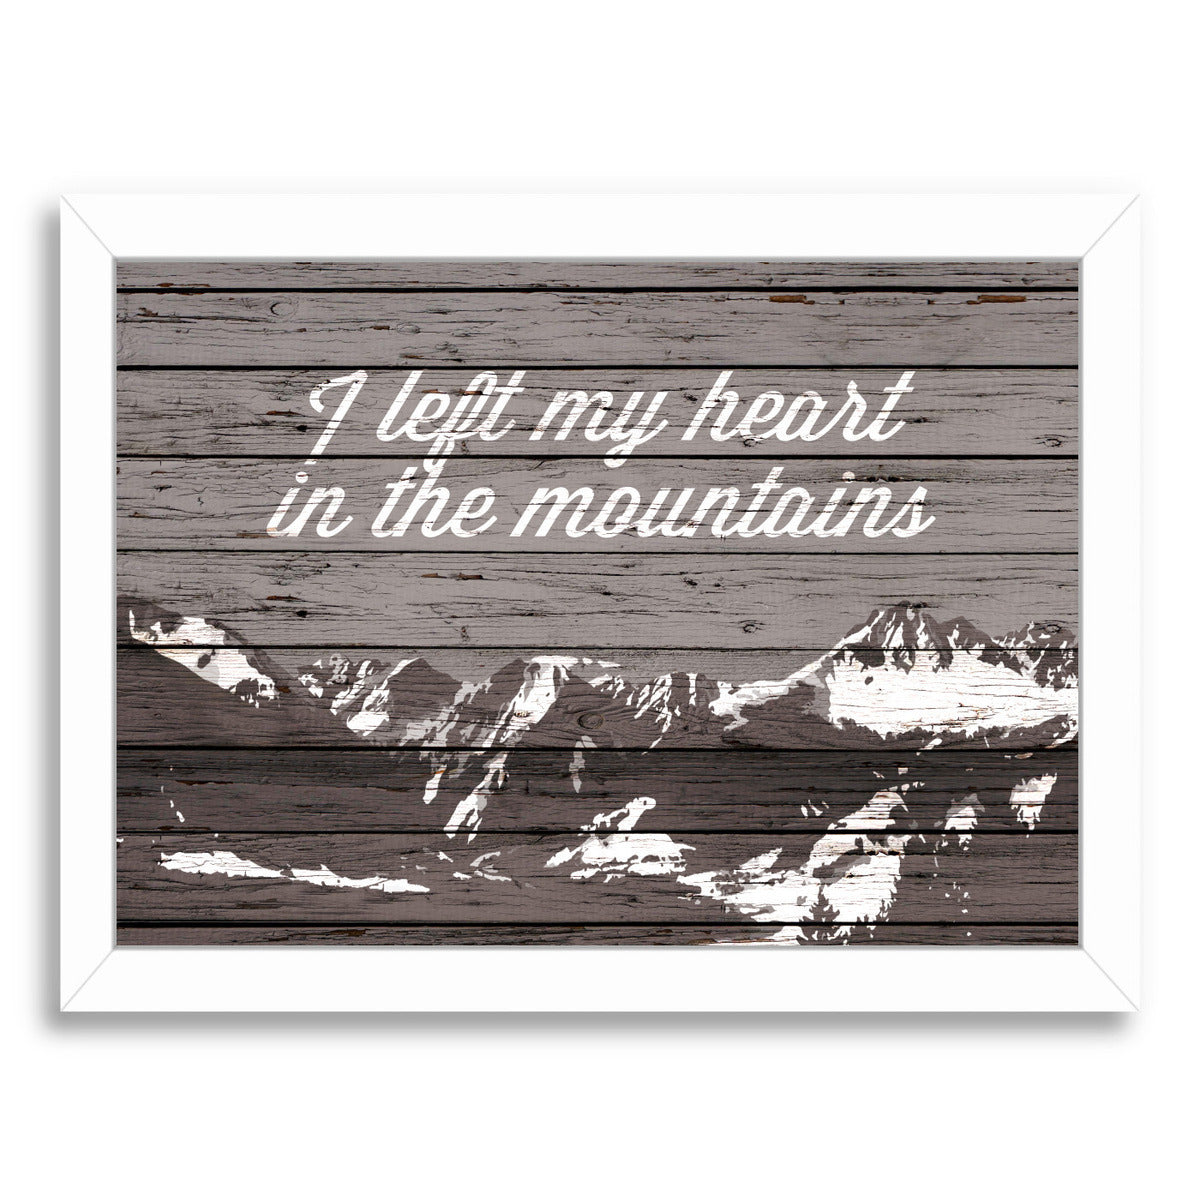 I Left My Heart In The Mountains by Samantha Ranlet Framed Print - Wall Art - Americanflat